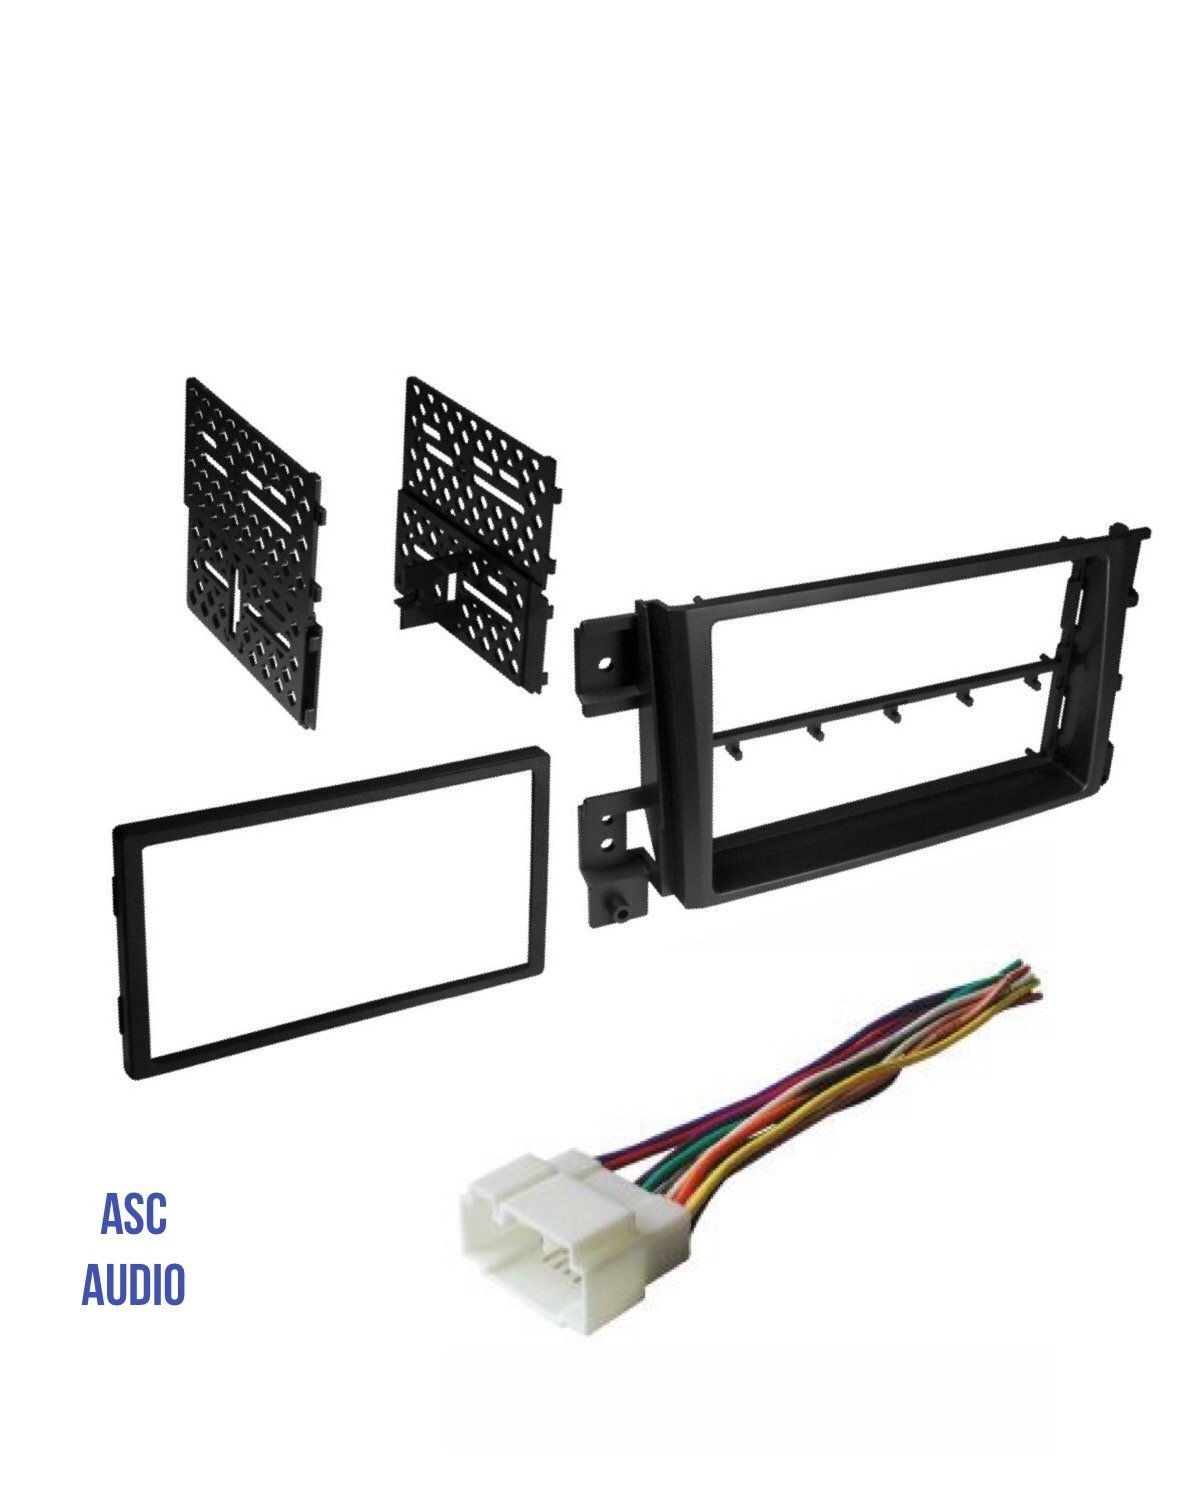 hight resolution of get quotations asc car stereo install dash kit and wire harness to install a double din aftermarket radio